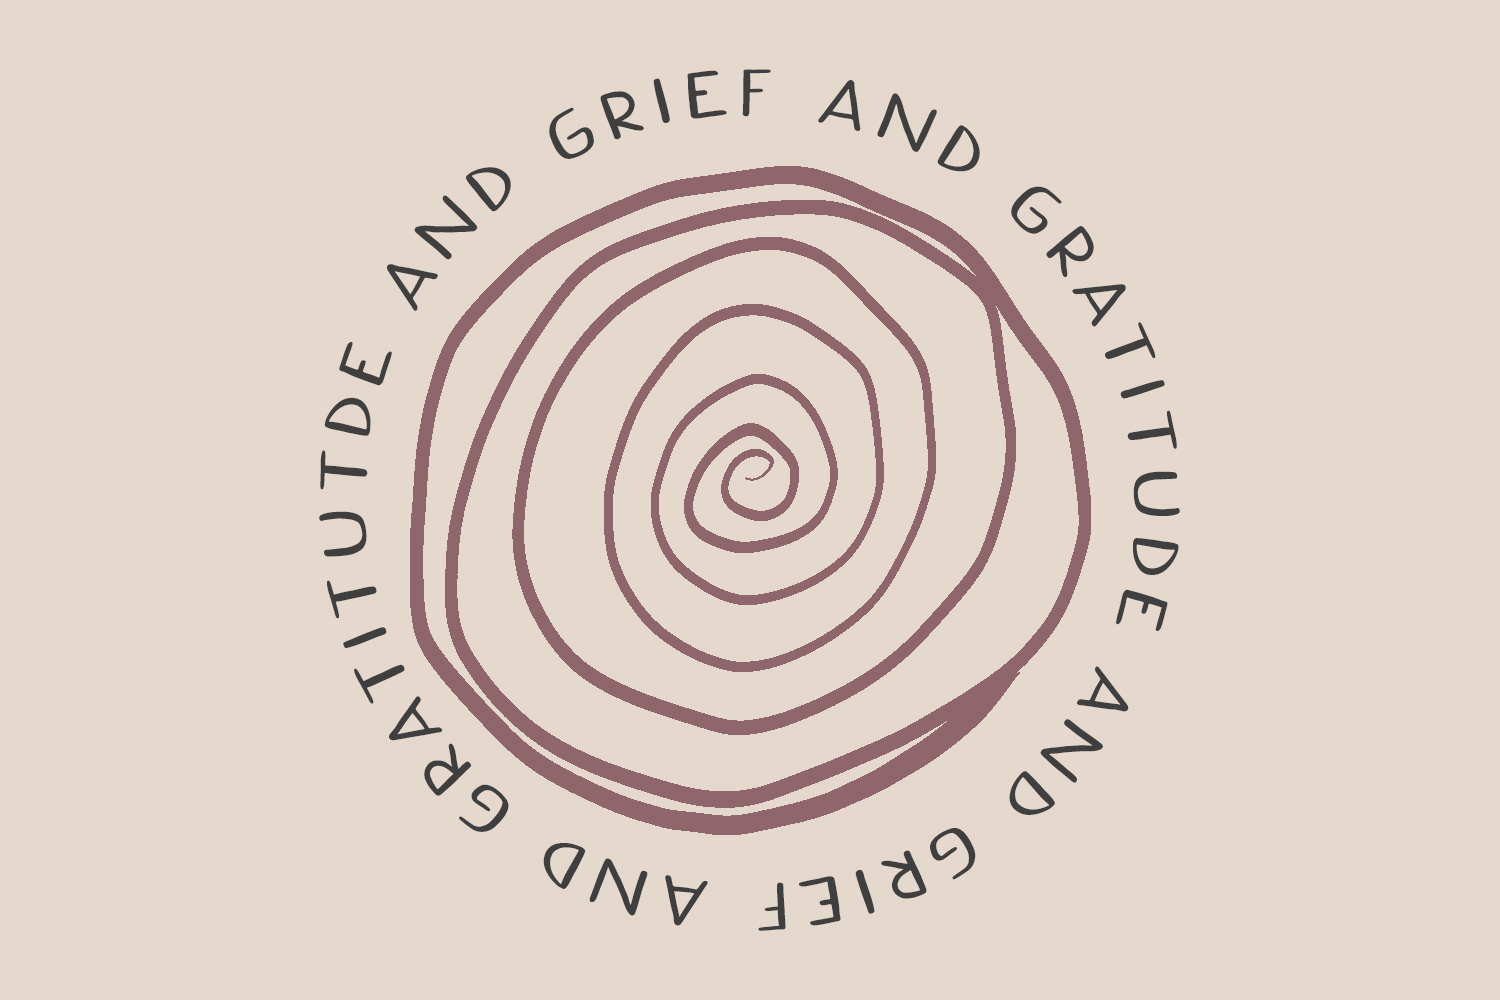 Grief and Gratitude Entangled